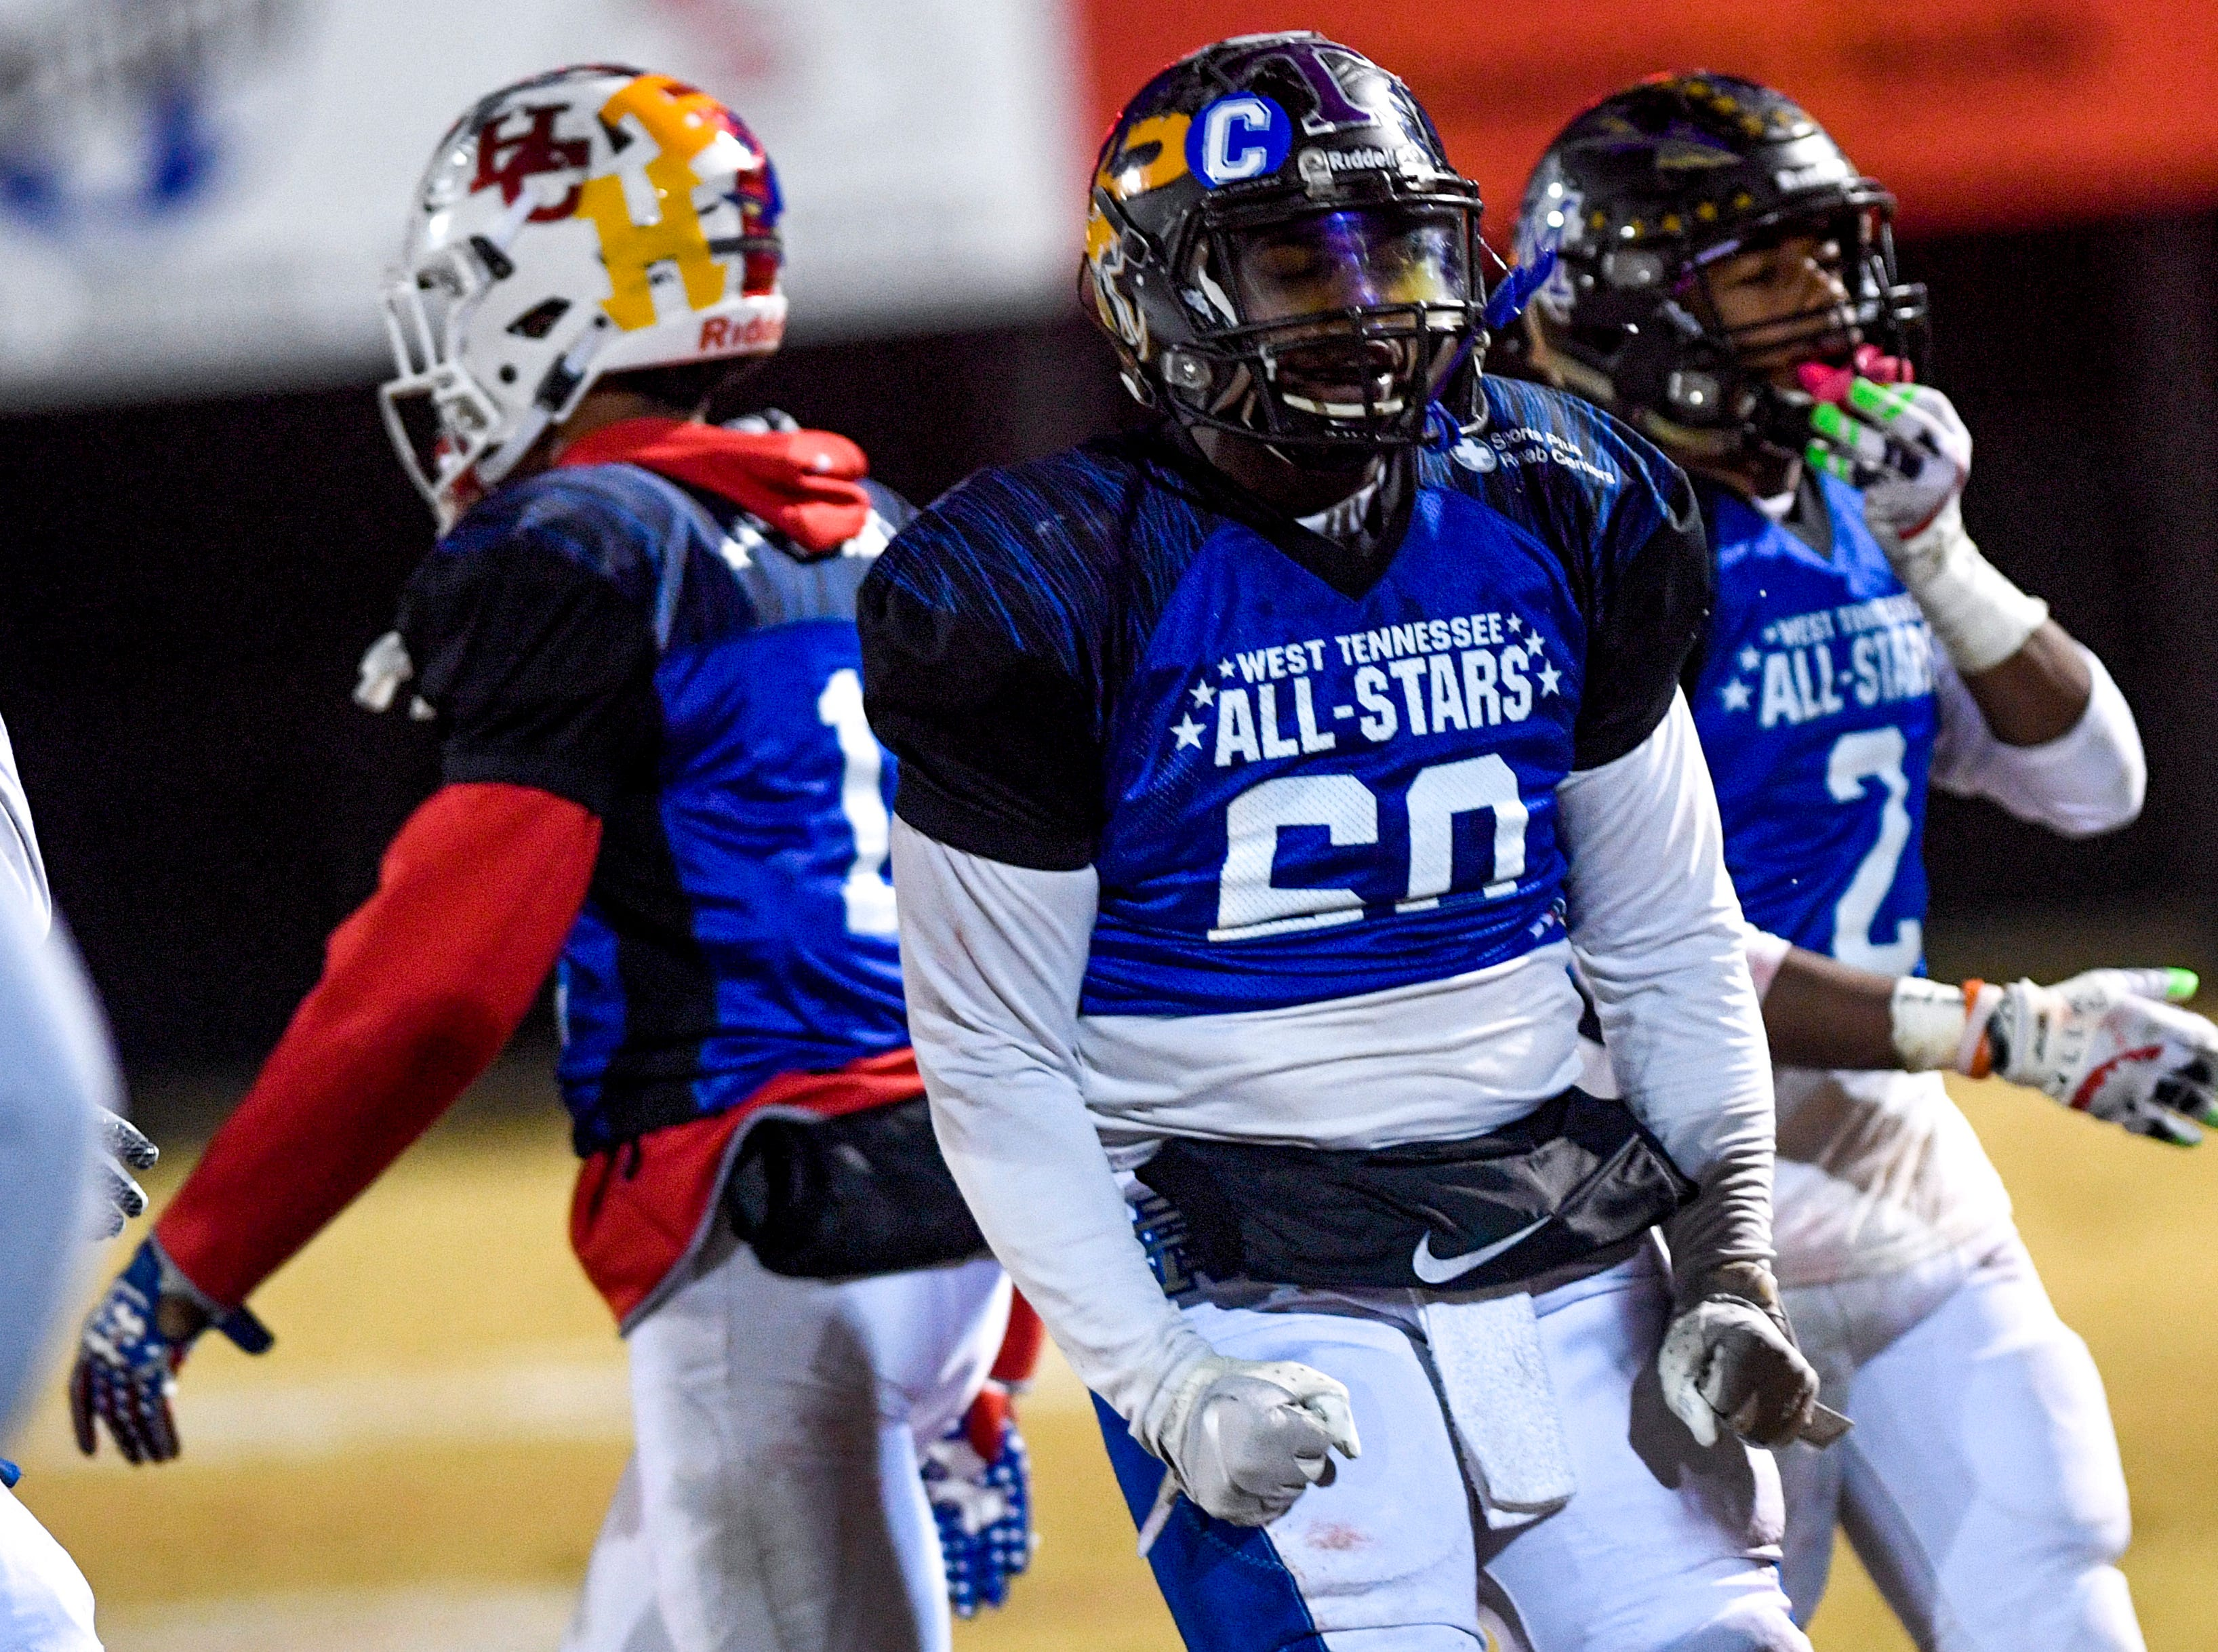 Peabody's Jasper Albea (60) celebrates after his team recovered a fumble during the West Tennessee All-Star football game at University School of Jackson in Jackson, Tenn., on Friday, Dec. 7, 2018.